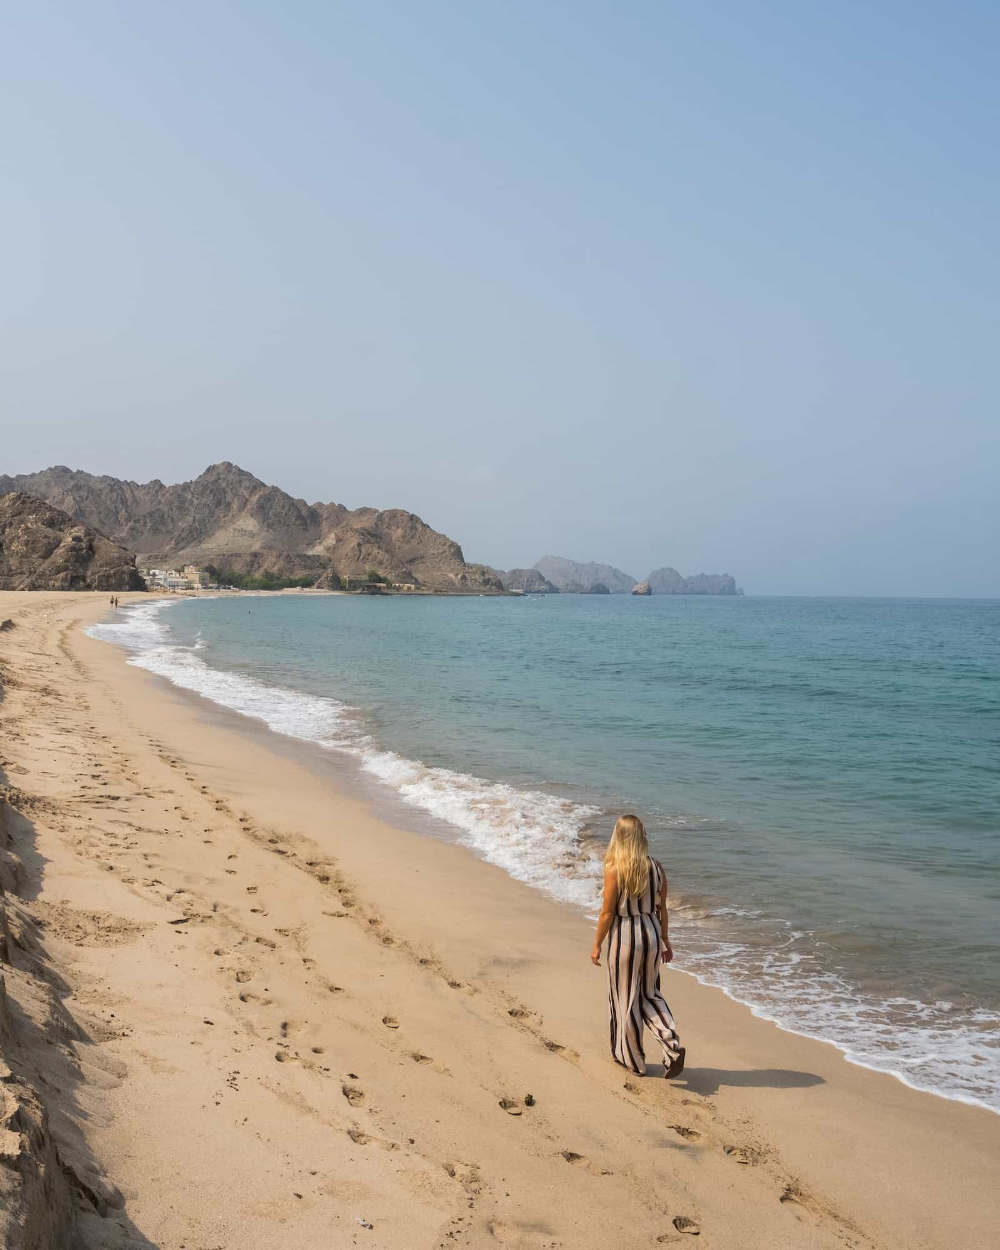 10 Best Things To Do In Muscat Oman Muscat Travel Guide With Images Oman Travel Travel Travel Fun